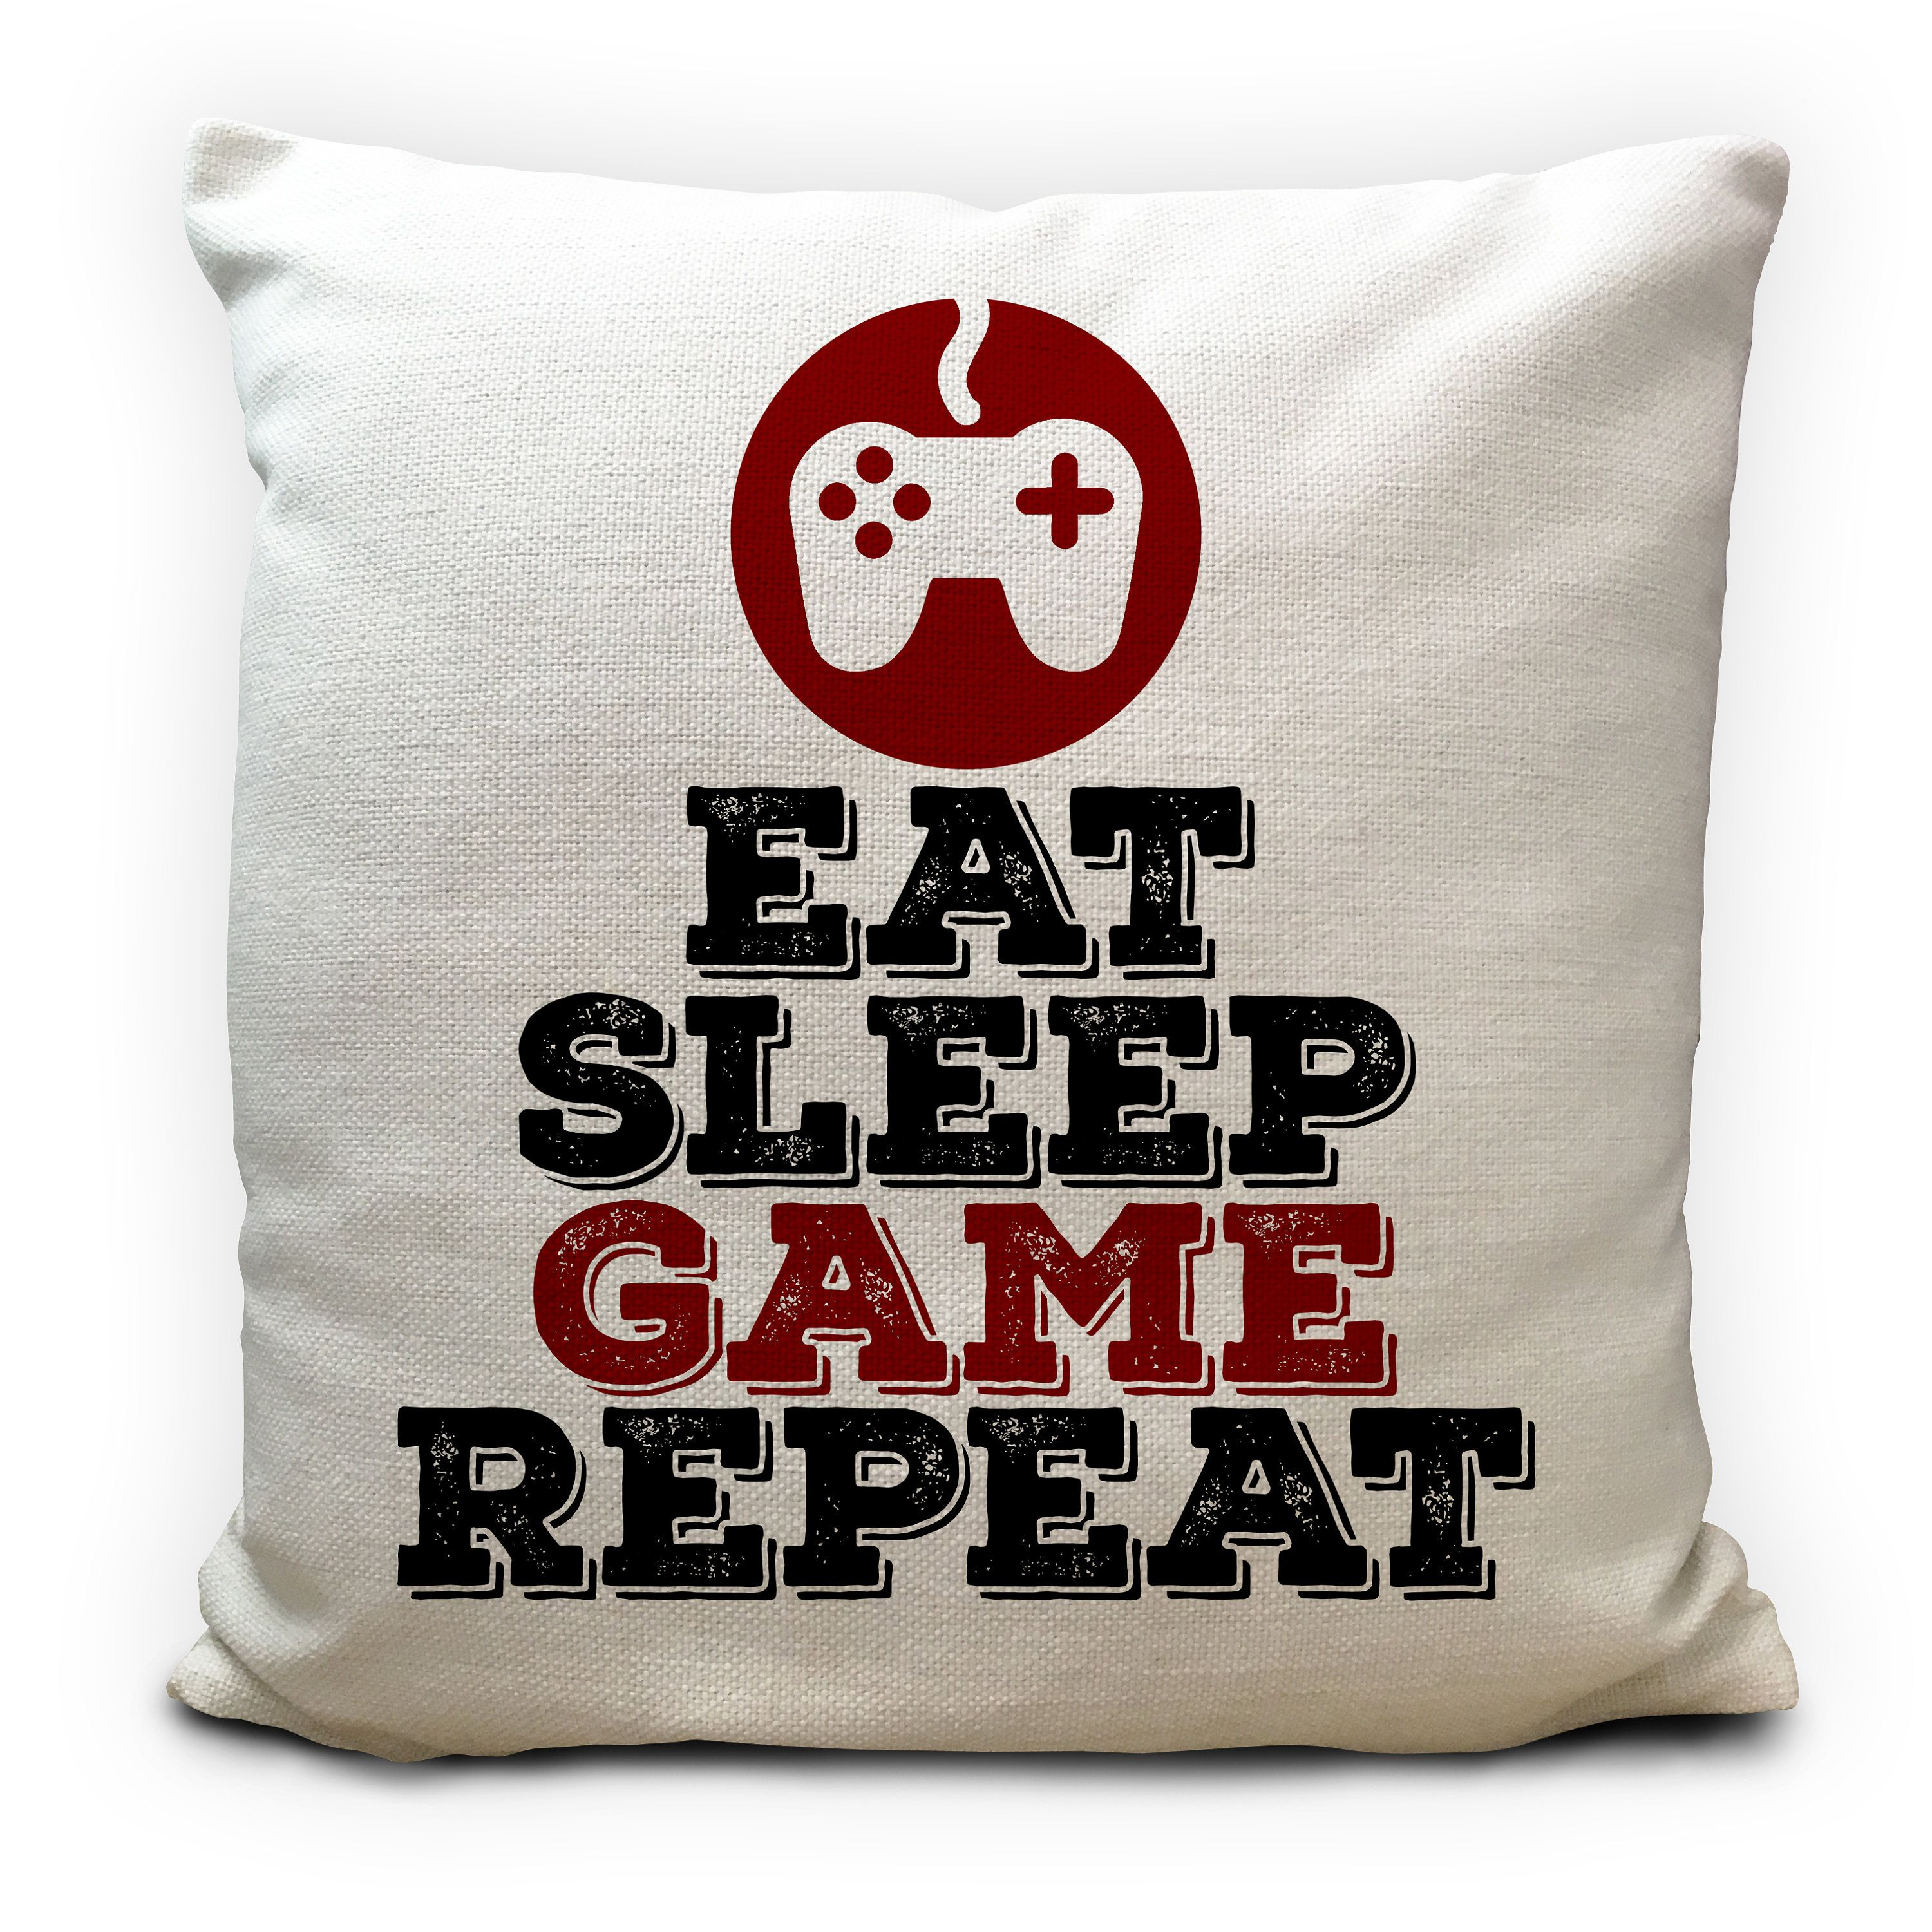 Game chair cushion cover pillow slip case gaming seat pad eat